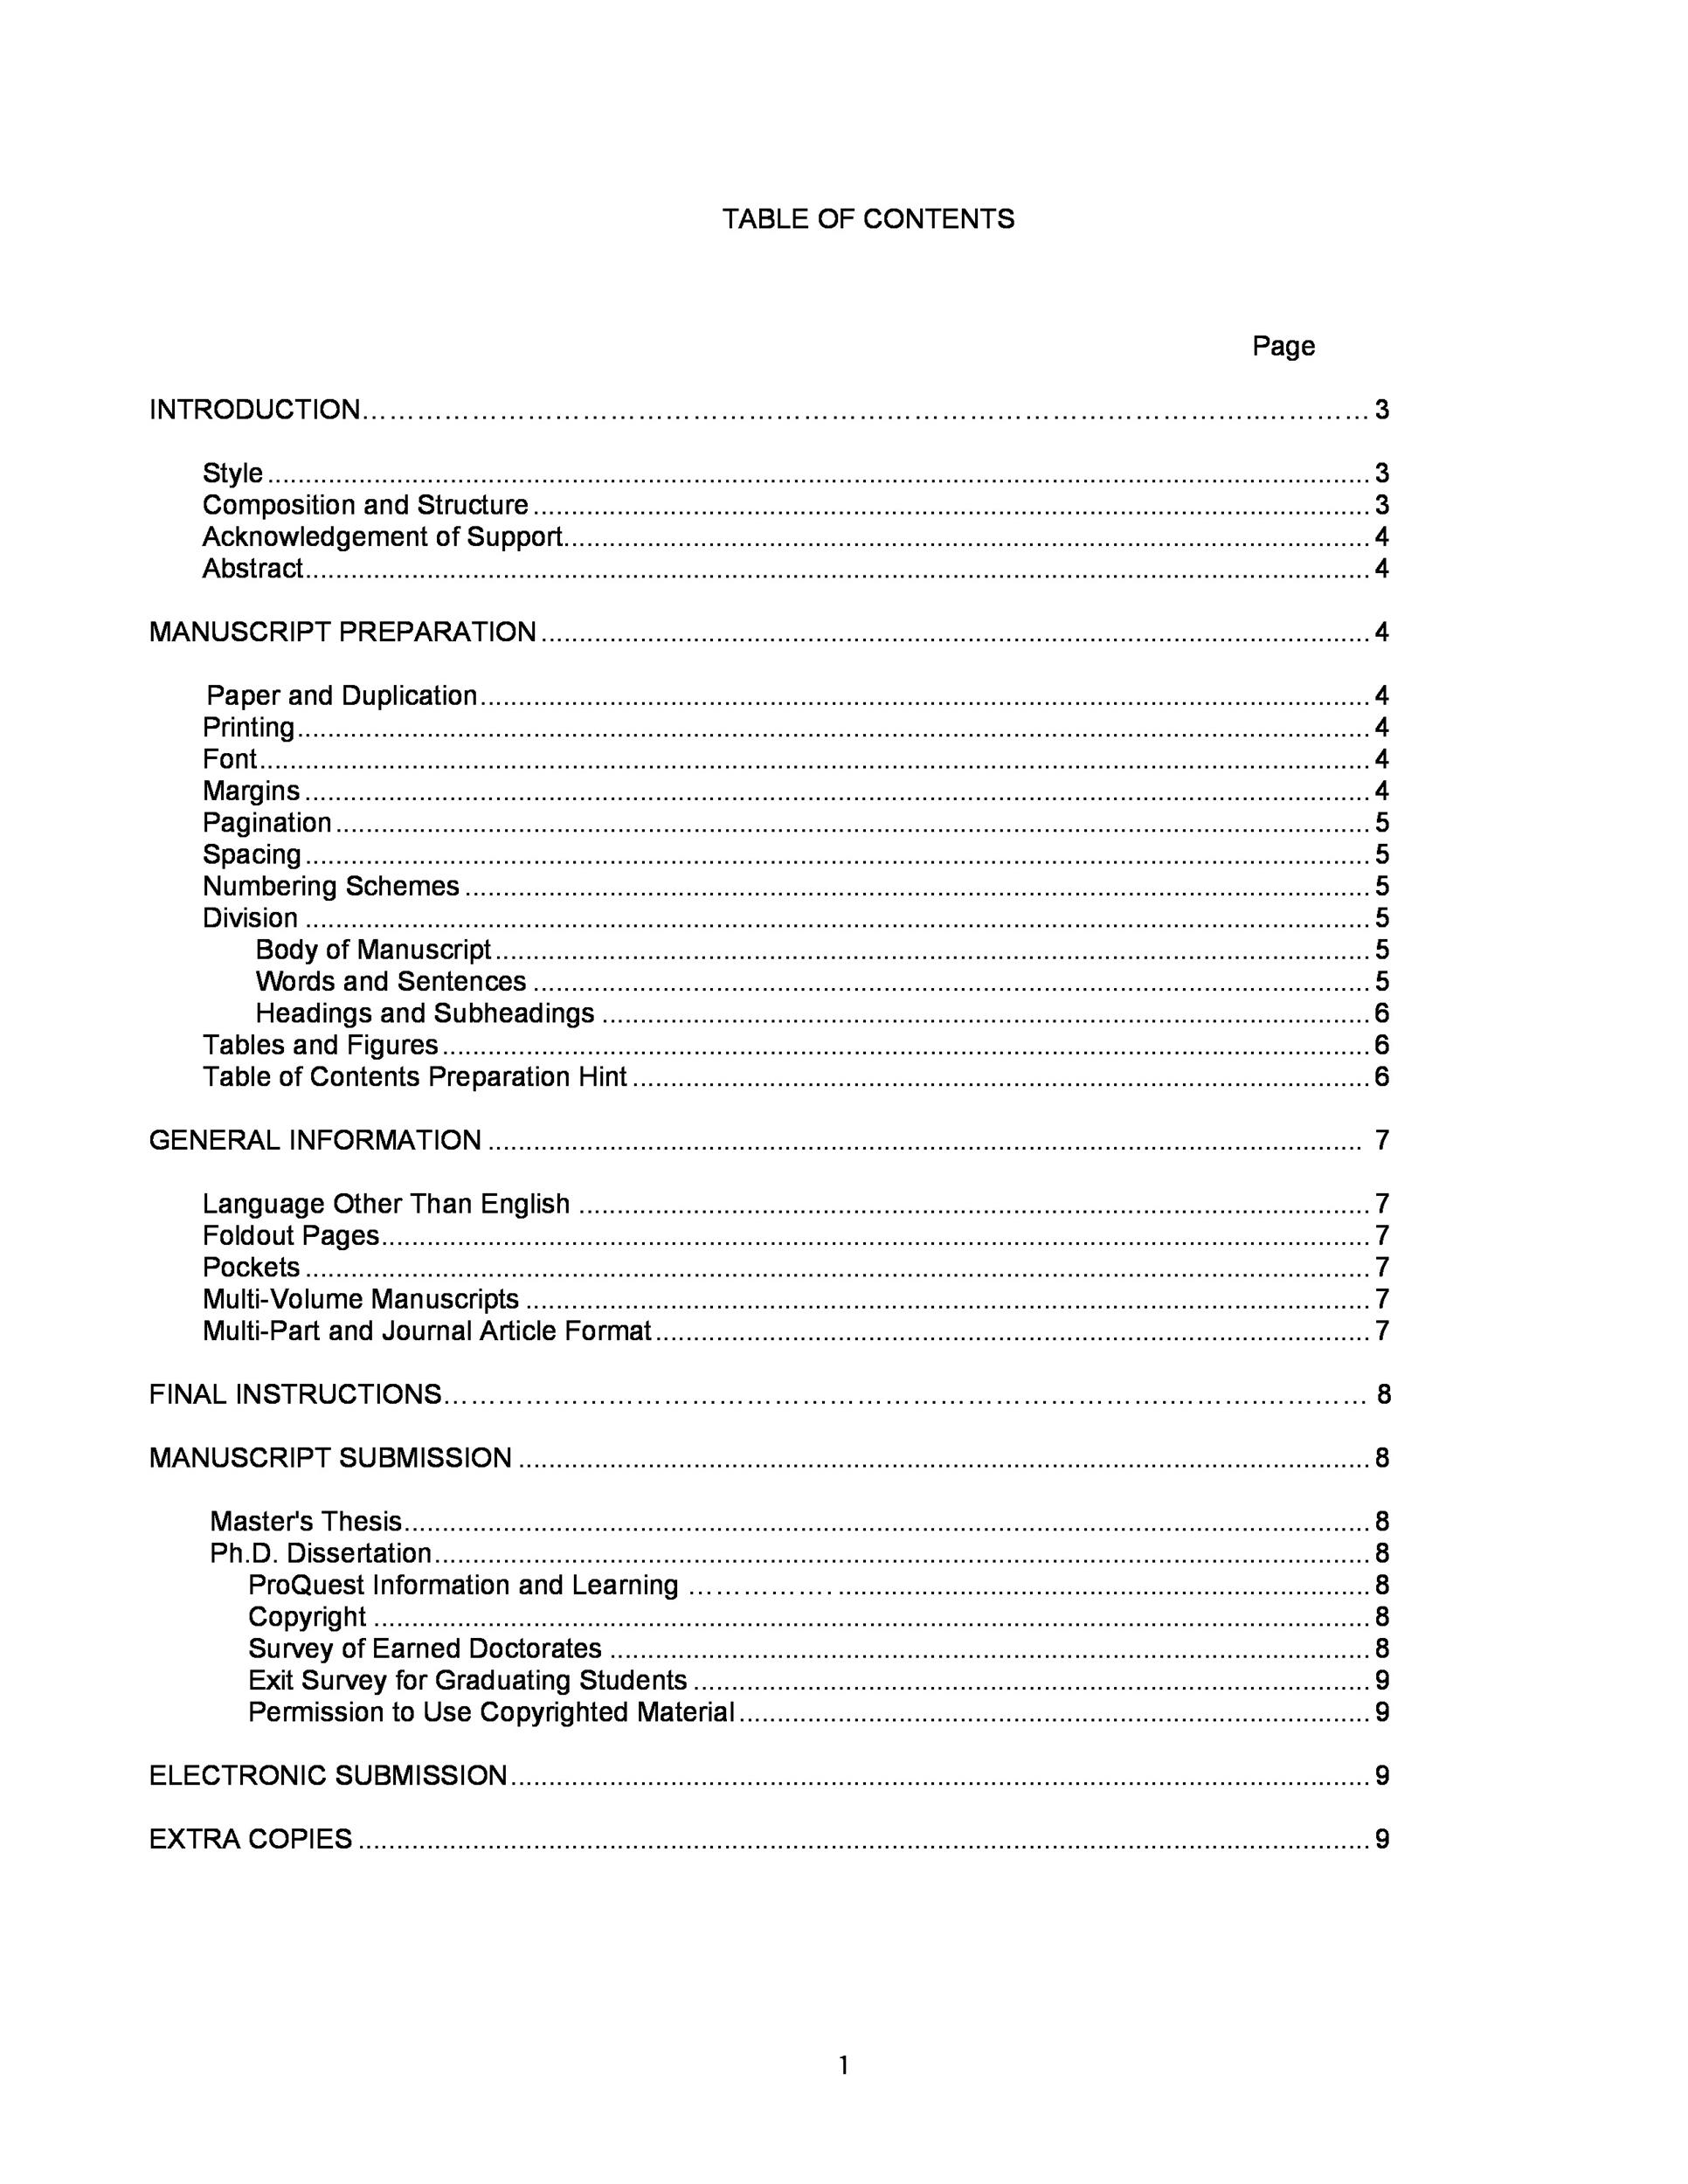 Table Of Contents Templates And Examples  Template Lab